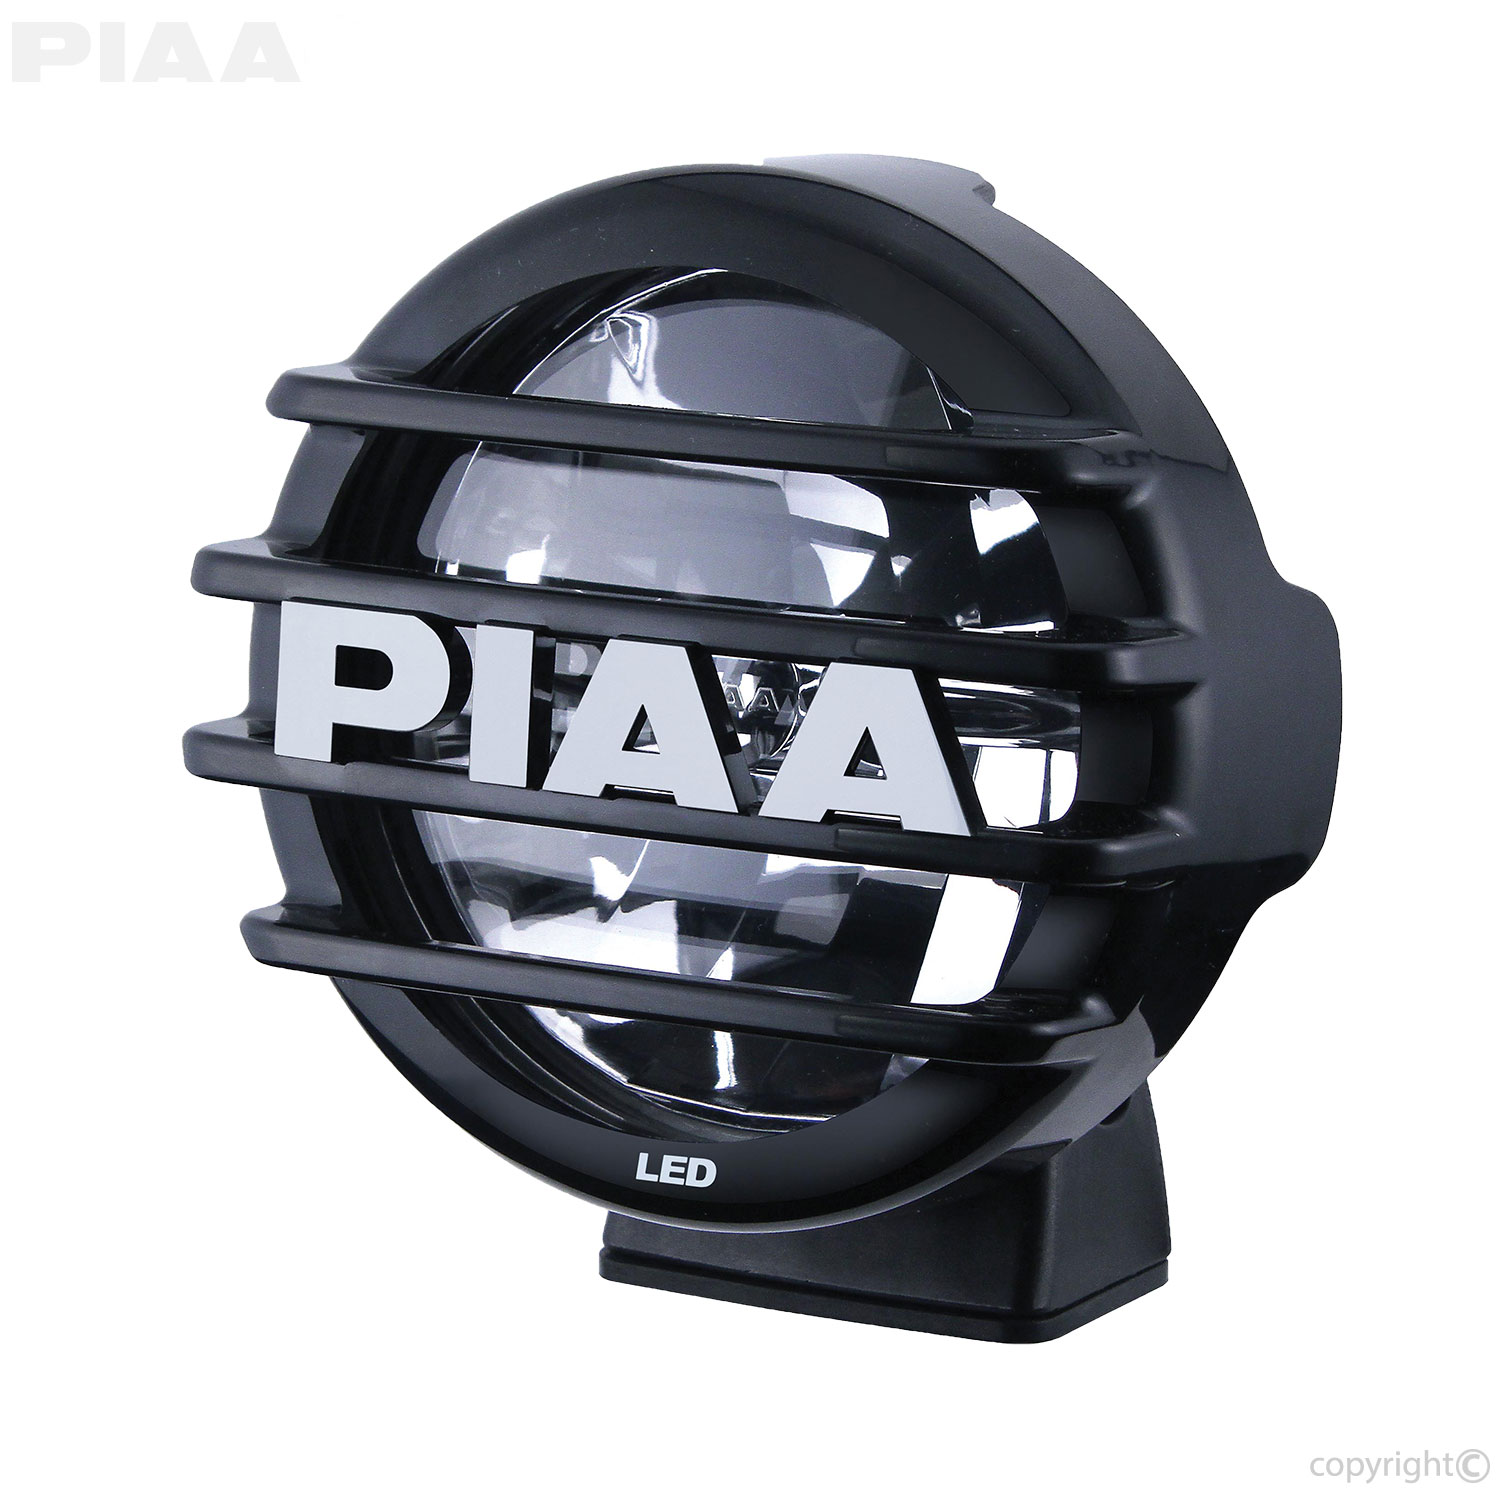 PIAA LP550 LED Light